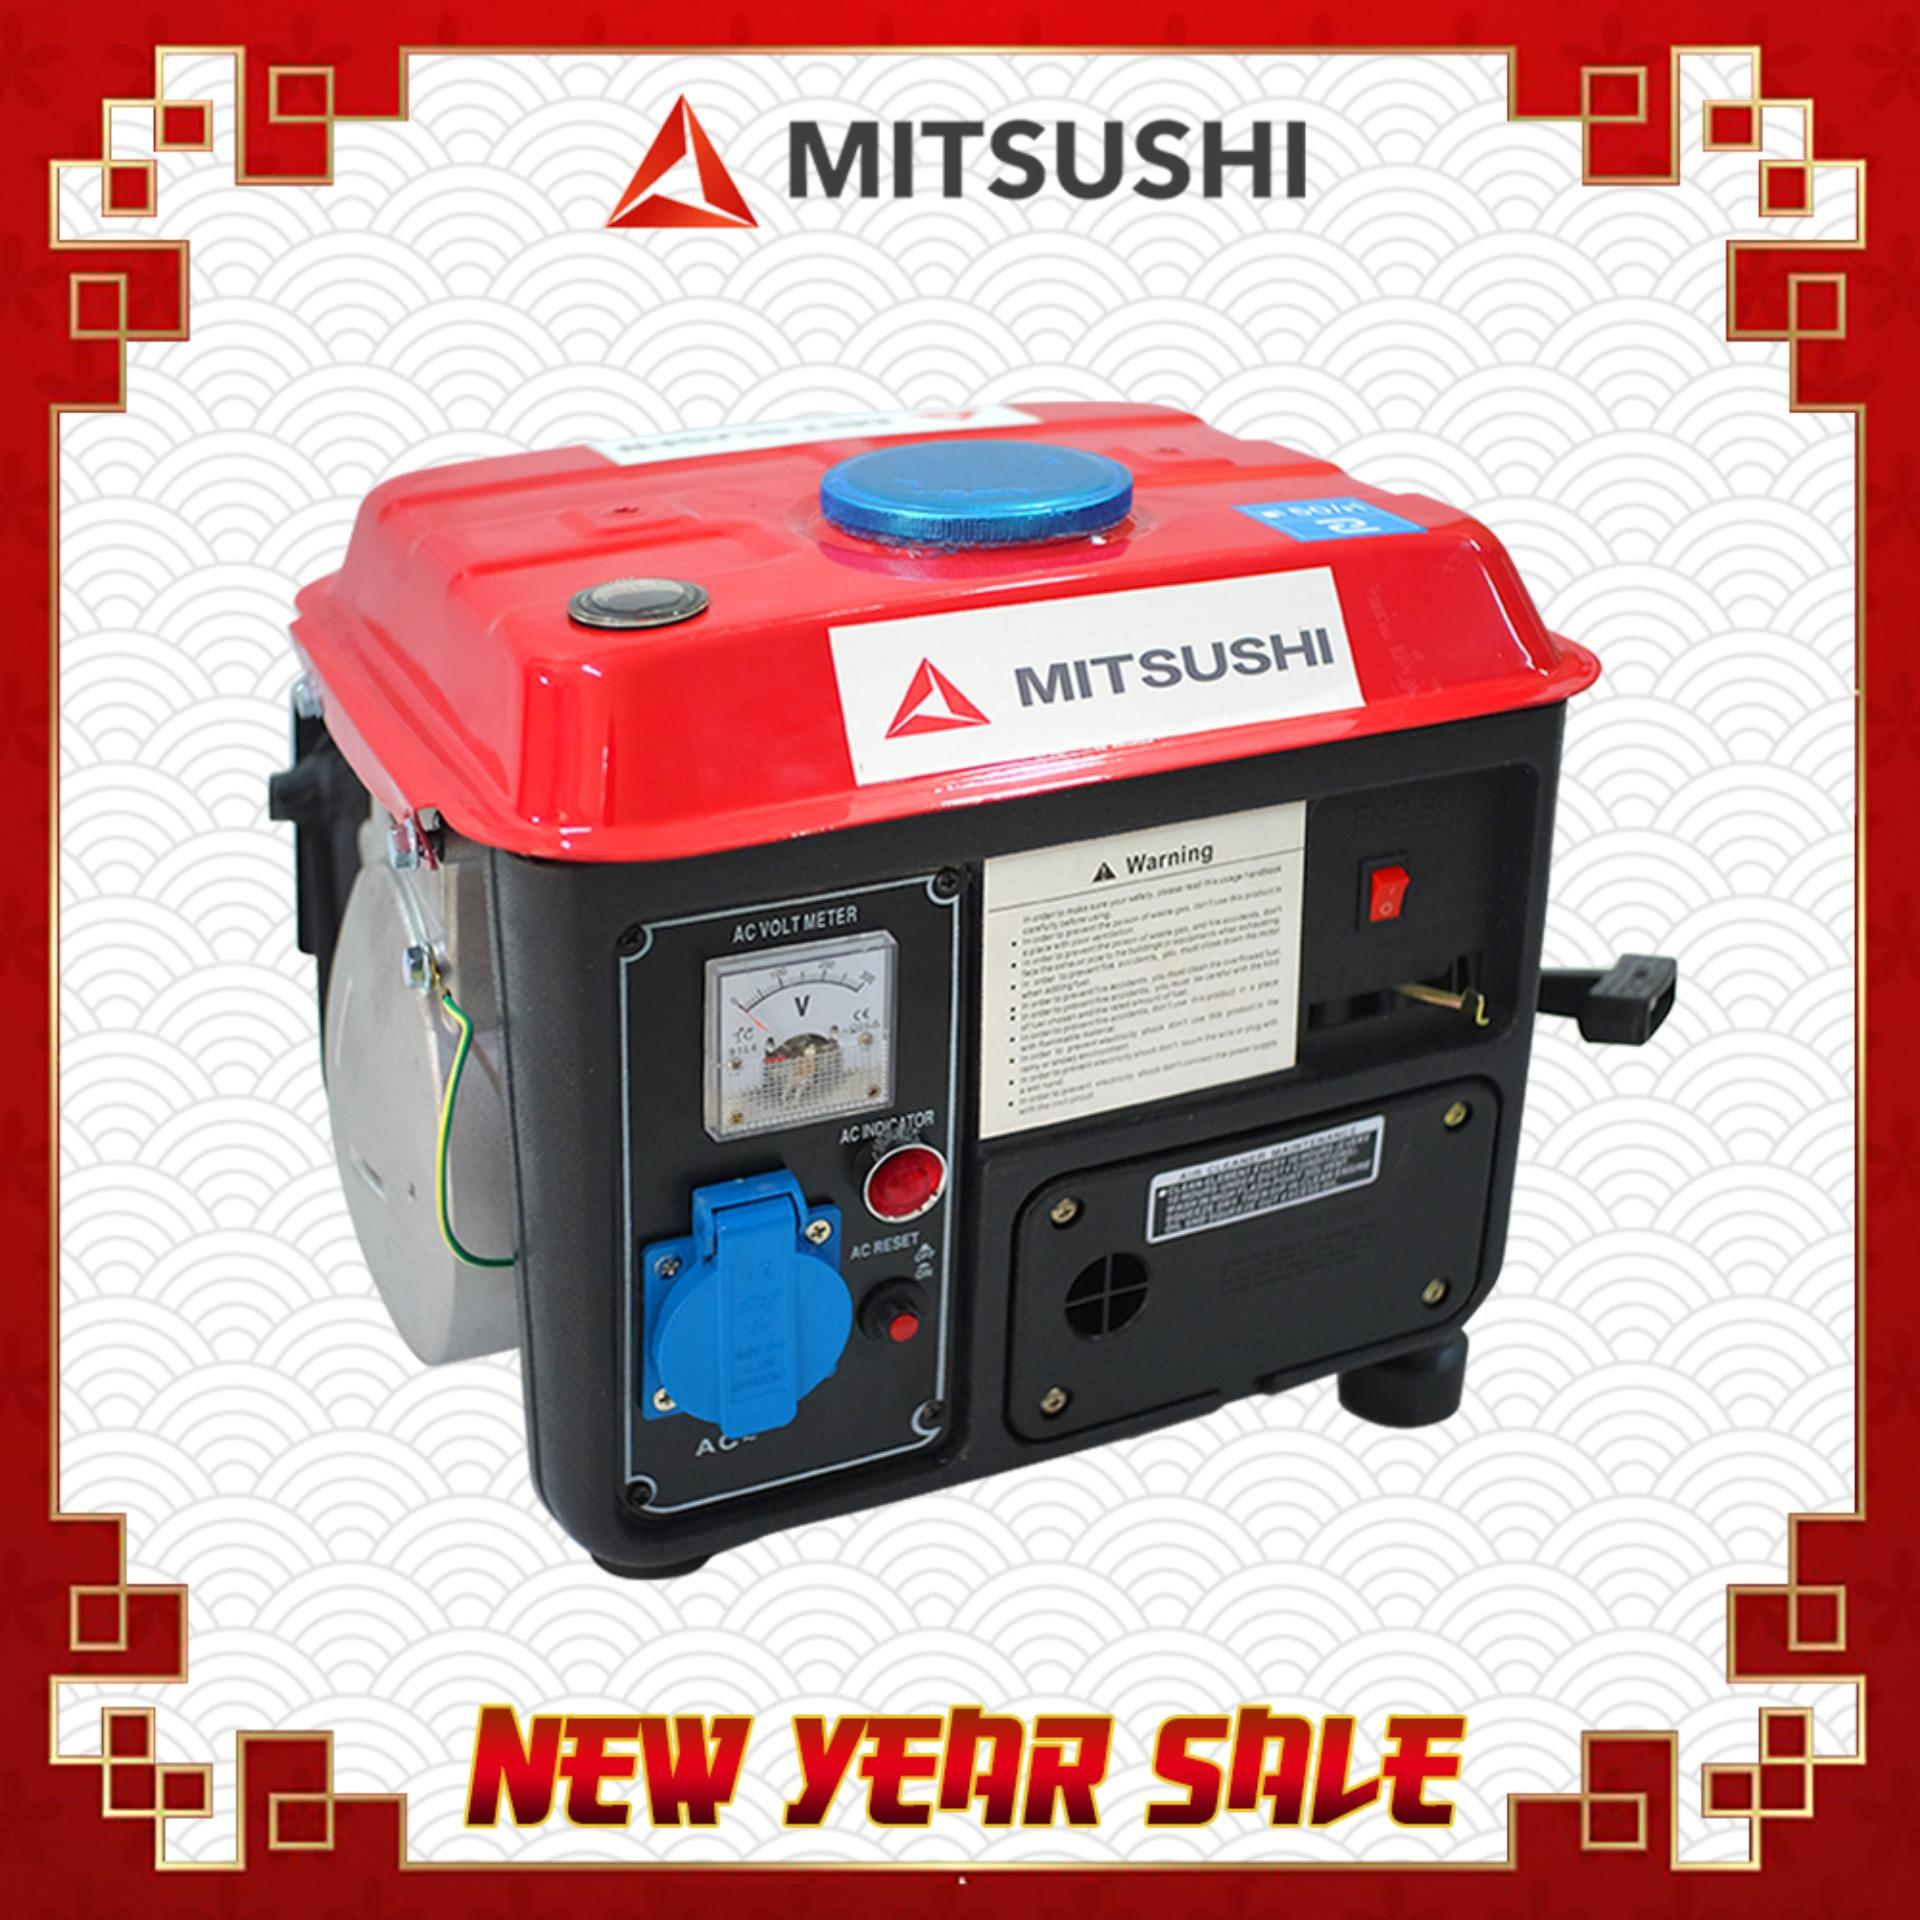 Portable Generator For Sale Power Prices Brands On Reset Mitsushi 950a Max 720w 2 Stroke Recoil Starter